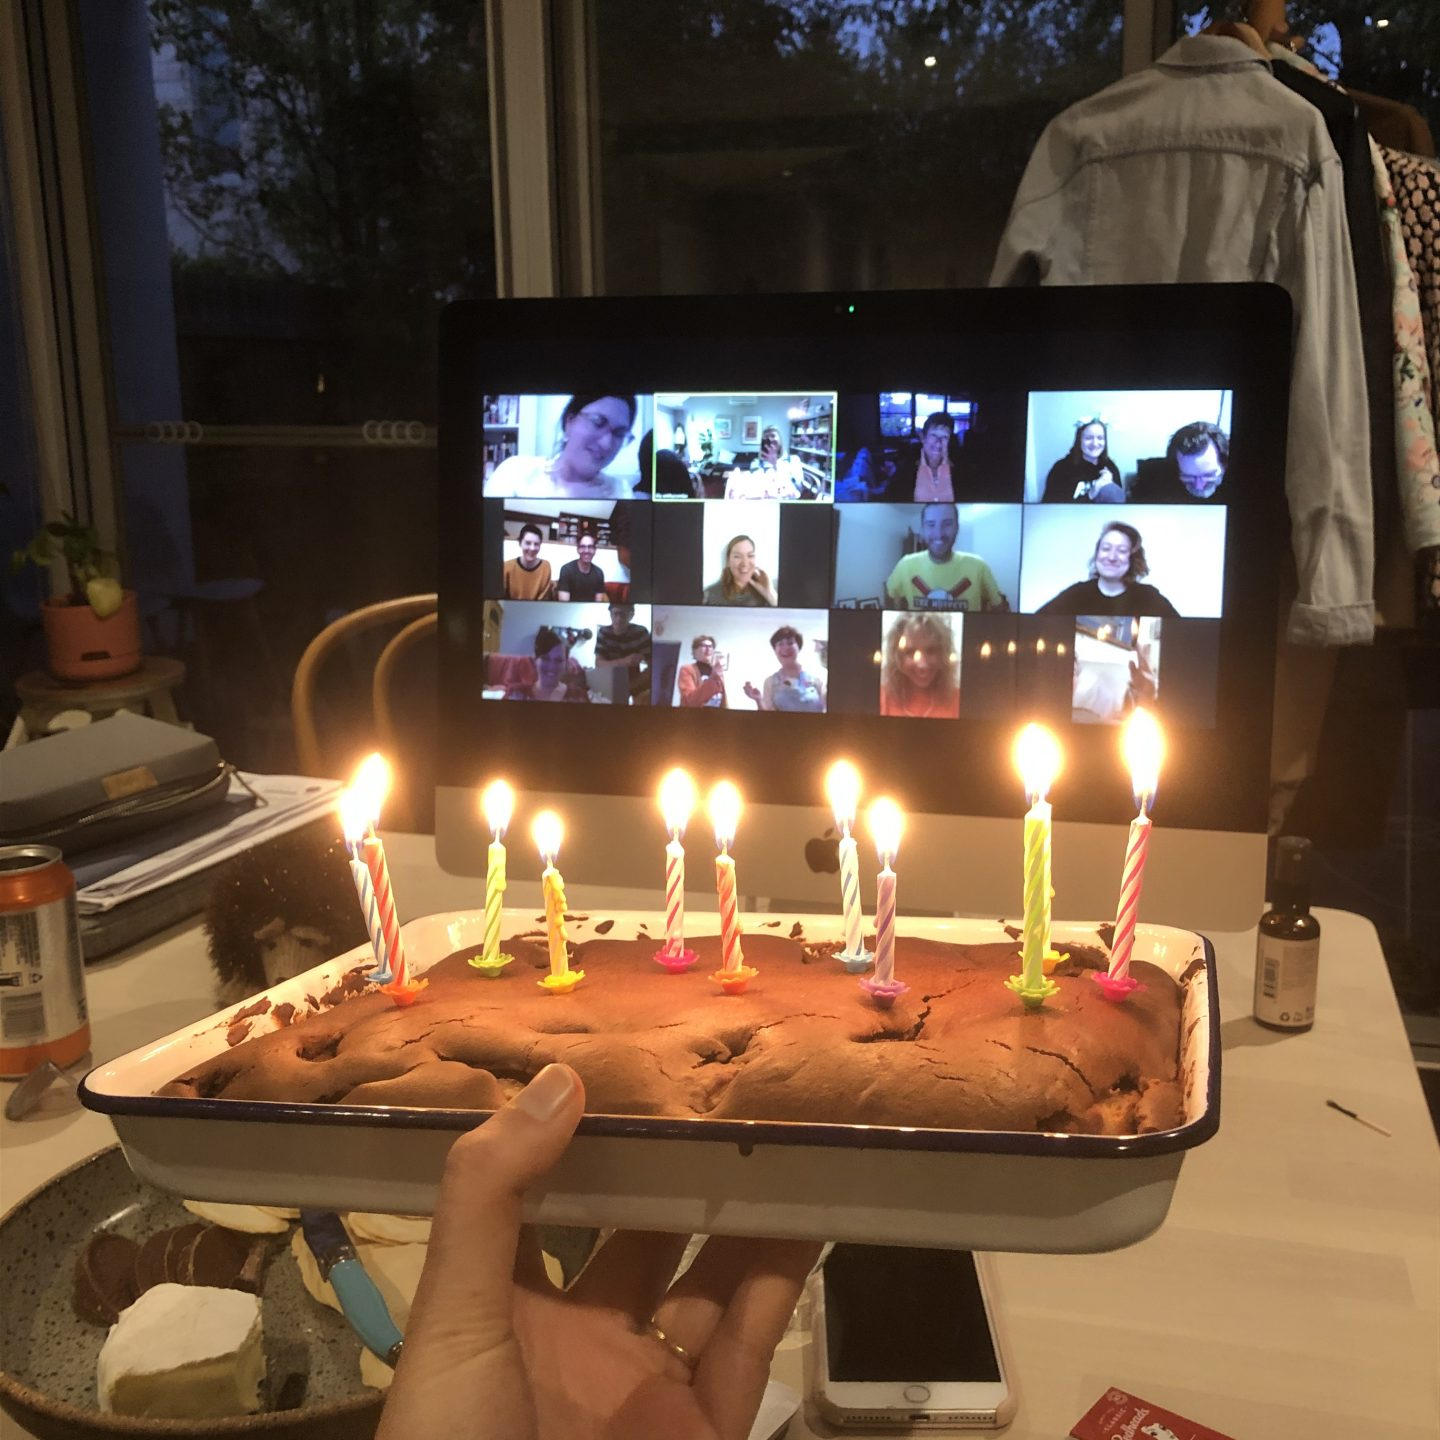 Birthday cake with ten lit candles, being held in front of a computer screen with 16 people in squares (Zoom).